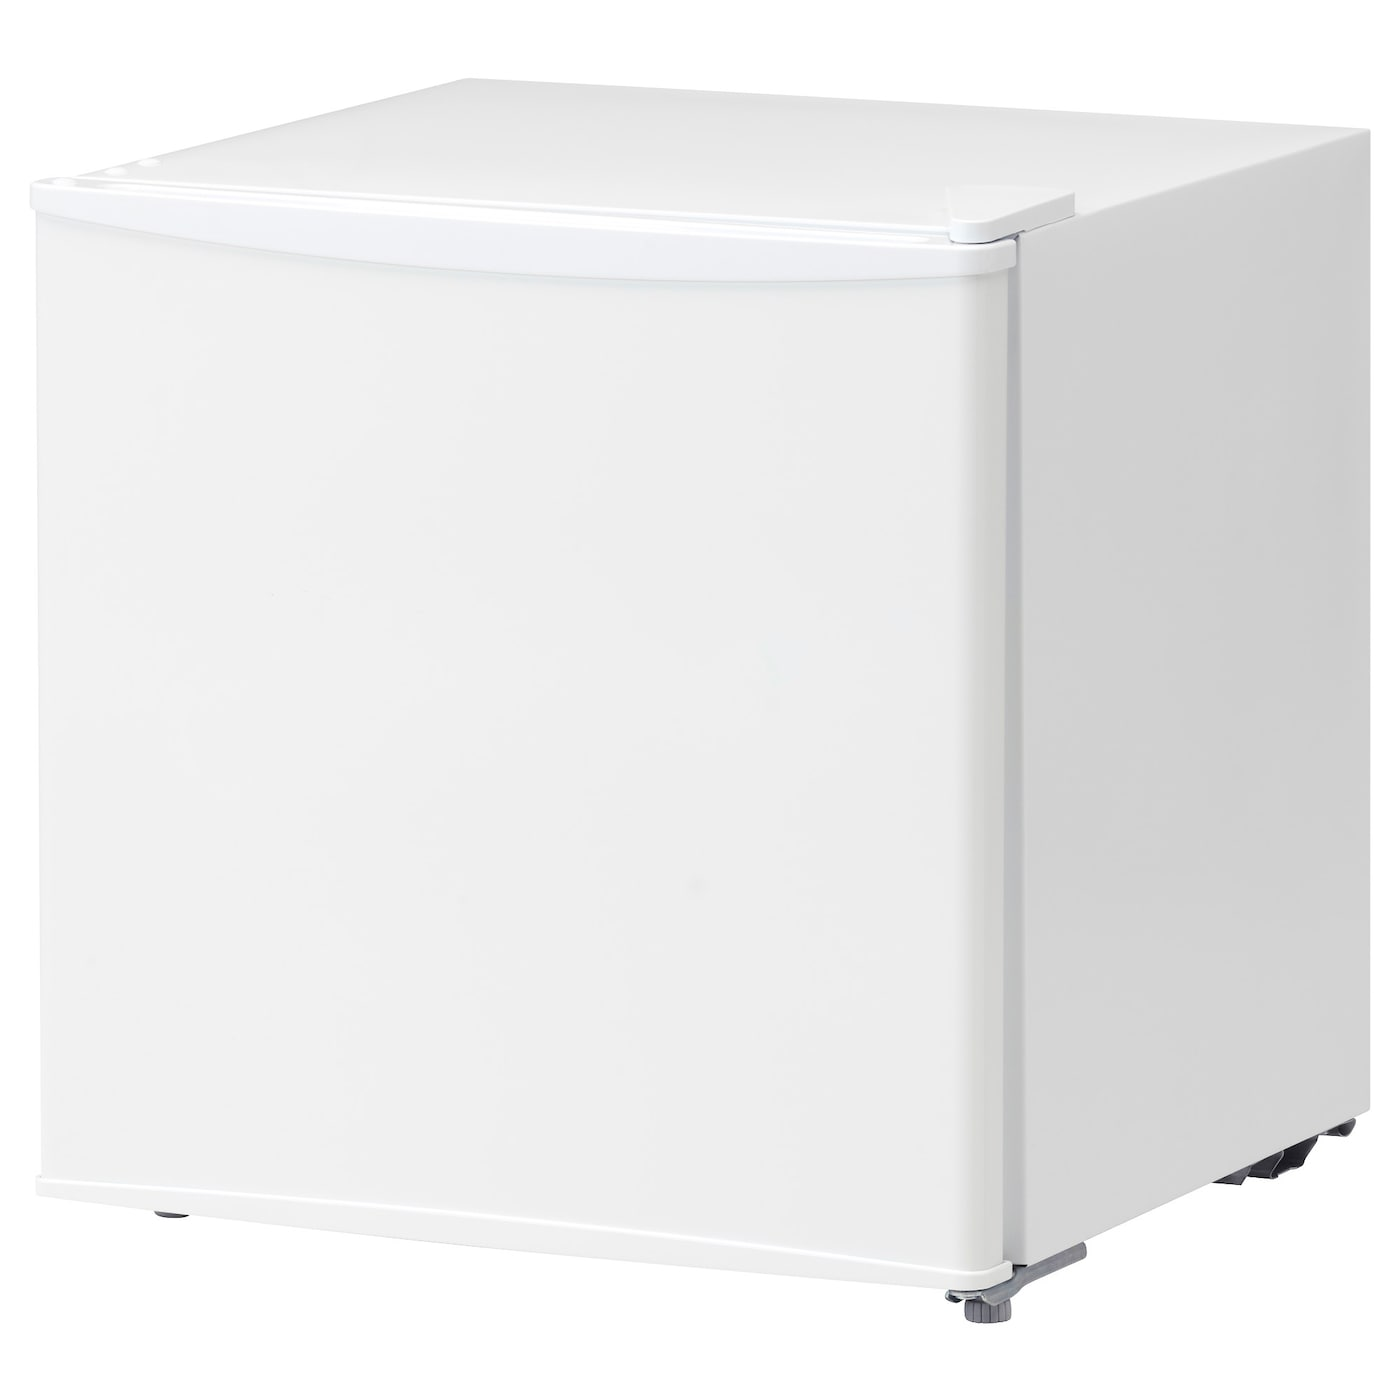 IKEA TILLREDA fridge A+ A small, free-standing fridge that fits easily into kitchens of all sizes.